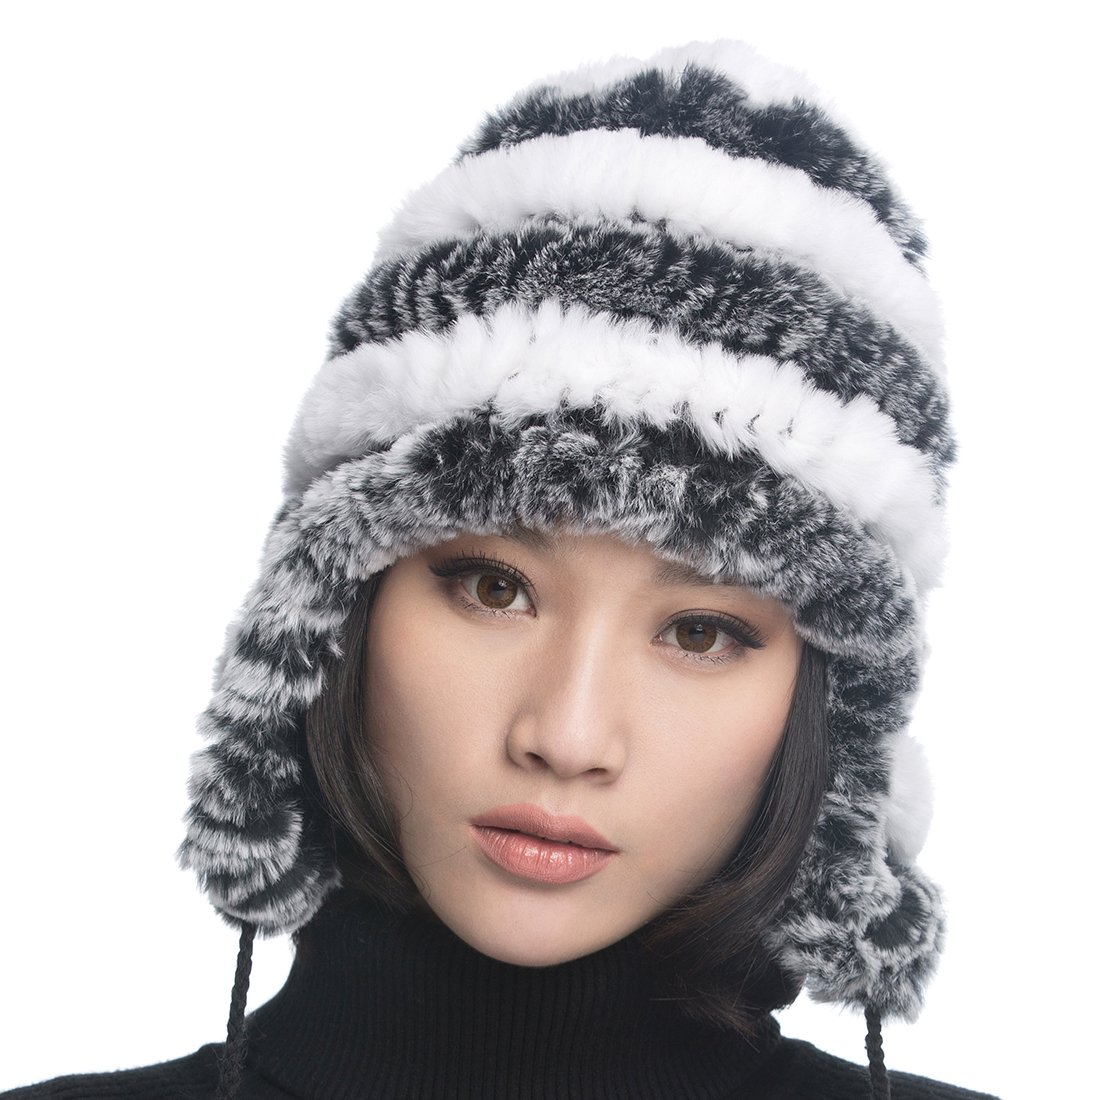 URSFUR Women's Rex Rabbit Fur Hats Winter Ear Cap Flexible Multicolor (Grey & White)